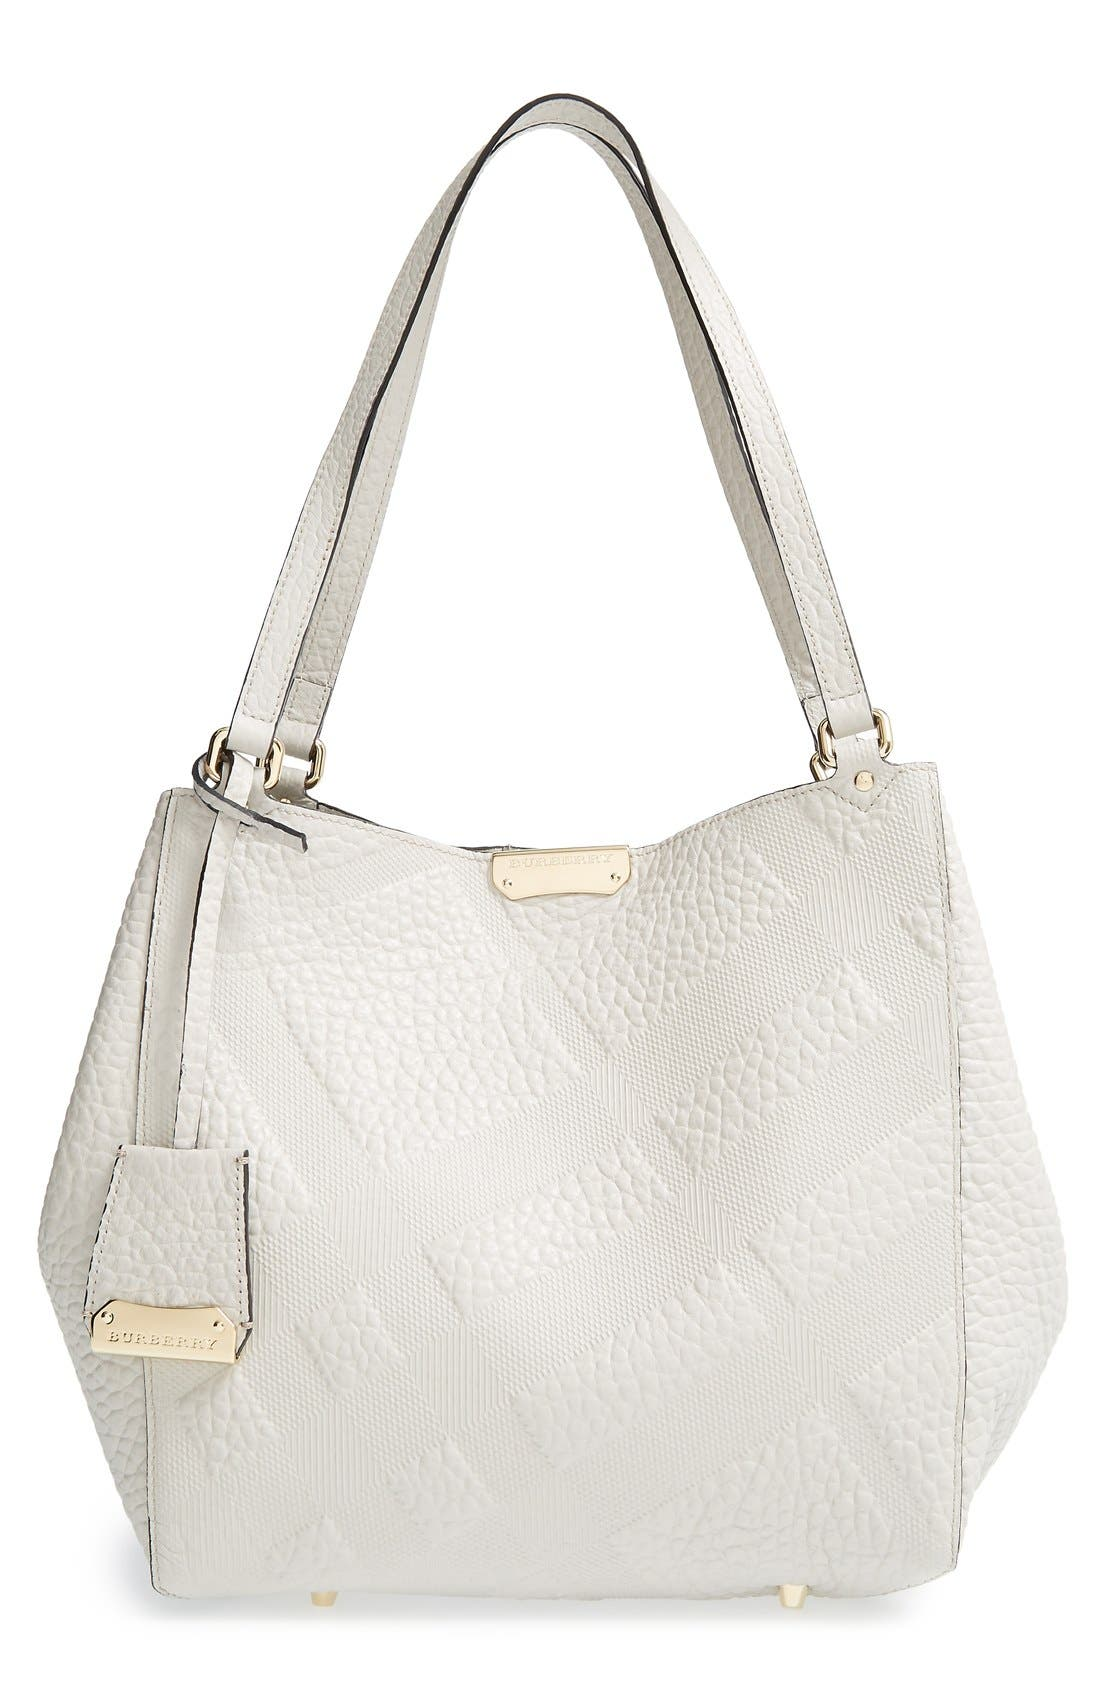 Alternate Image 1 Selected - Burberry 'Small Cantebury' Check Embossed Leather Tote